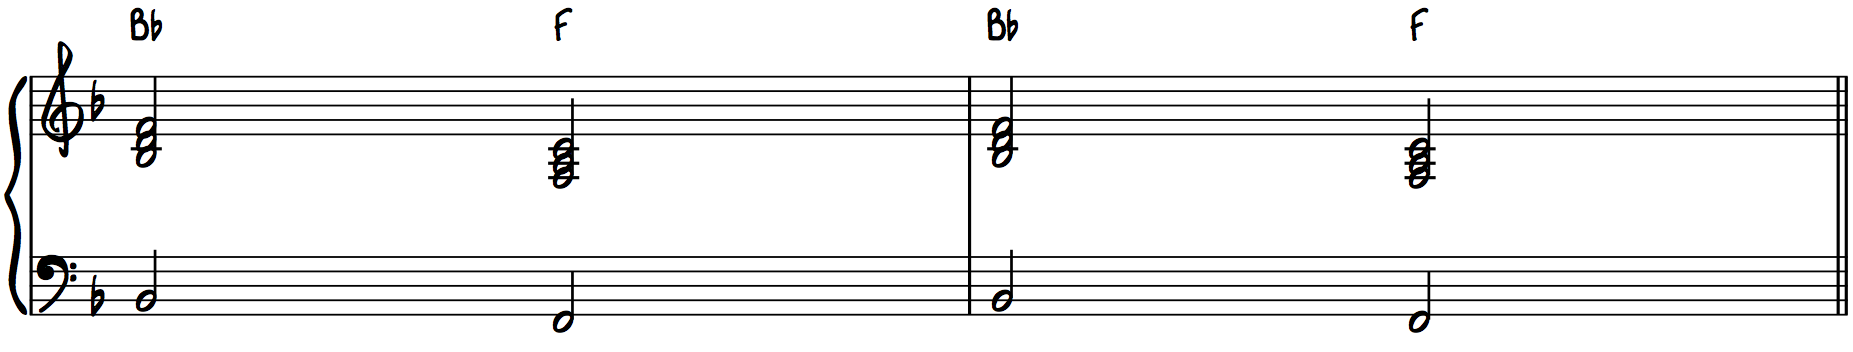 The 1-4 Chord Progression Contemporary Pop Music